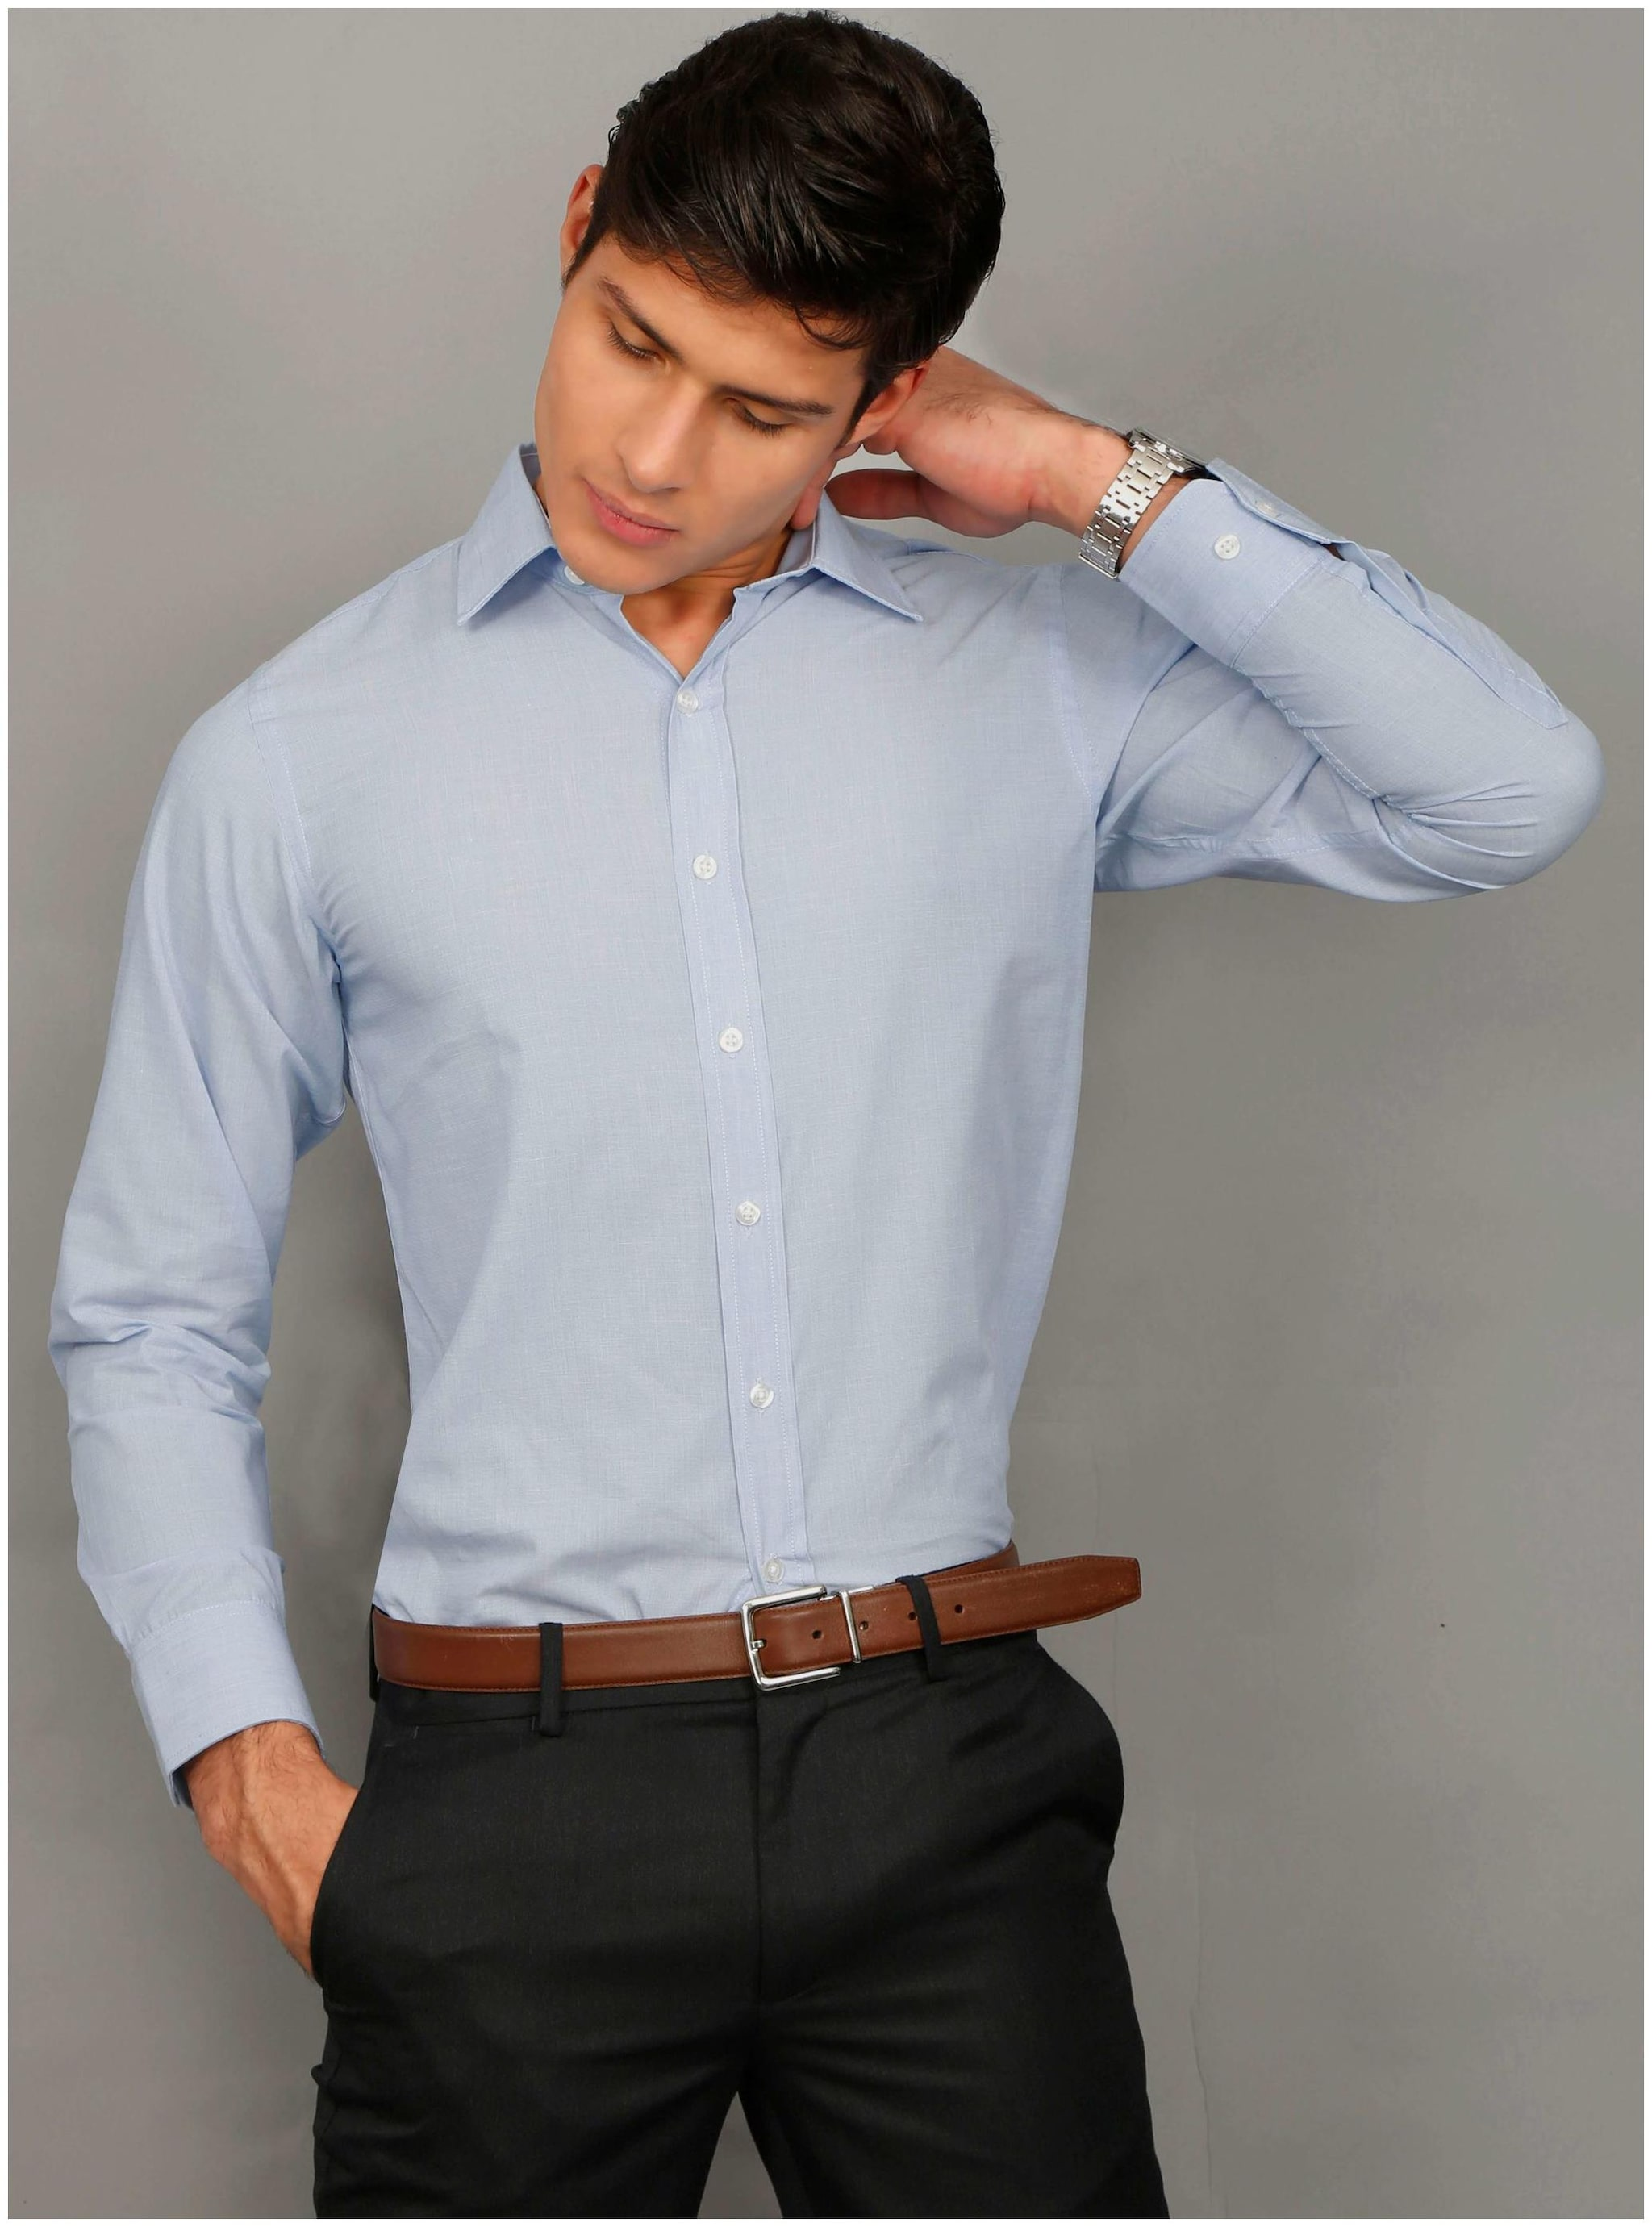 https://assetscdn1.paytm.com/images/catalog/product/A/AP/APPENSO-MEN-BLUENSO96039239E2B9F8/1563055100565_8.jpg